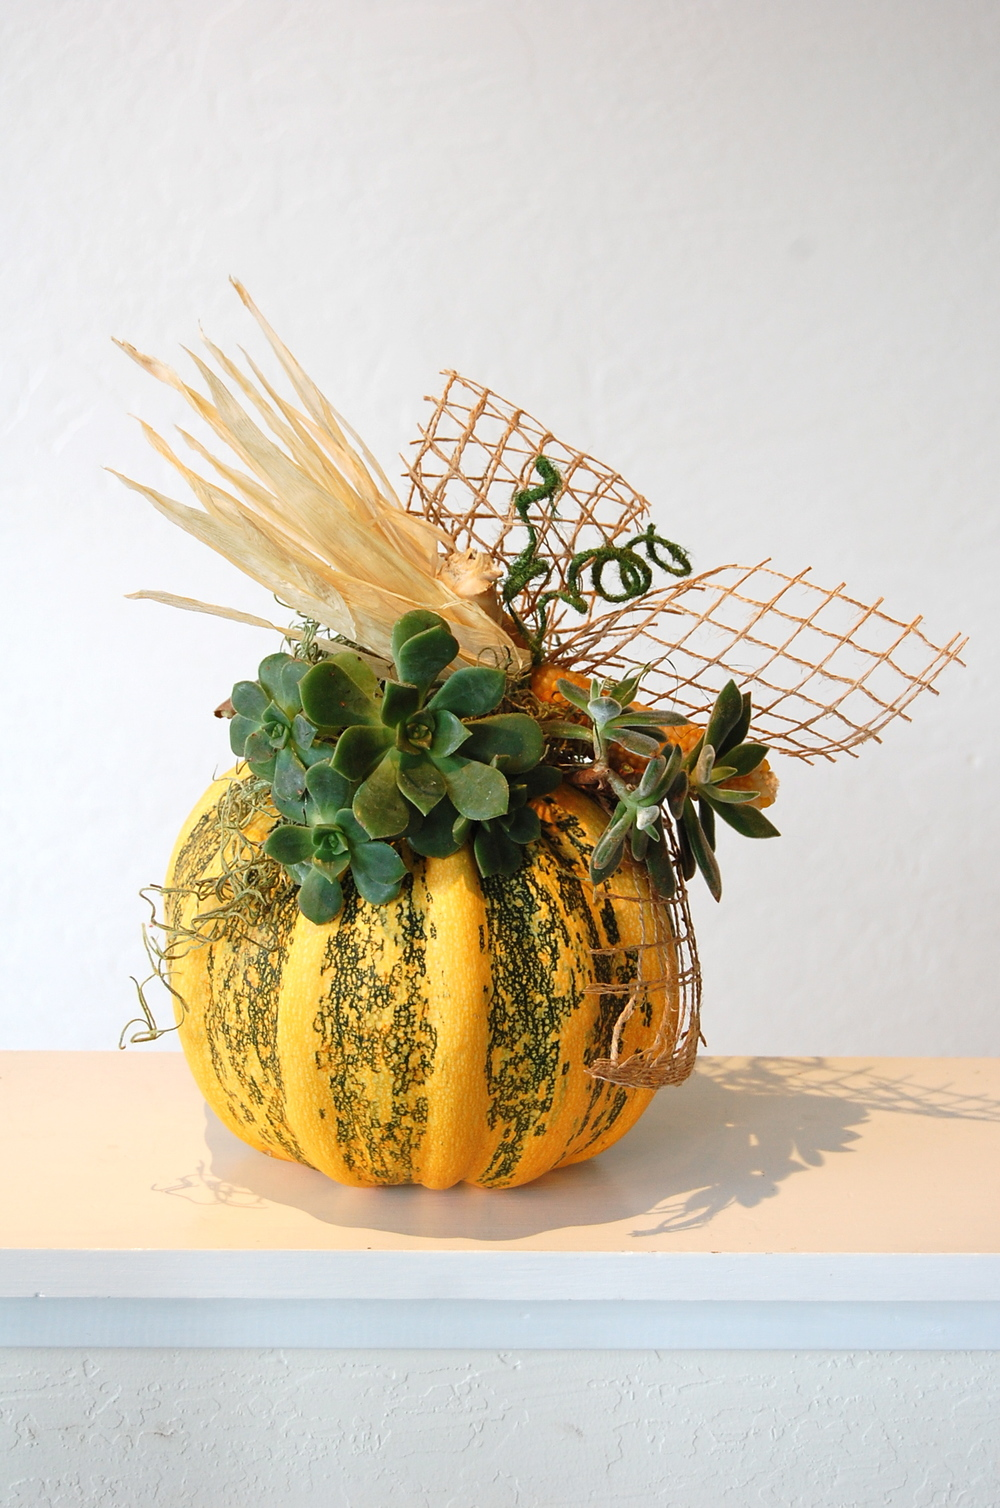 Autumn-Theme Pumpkin